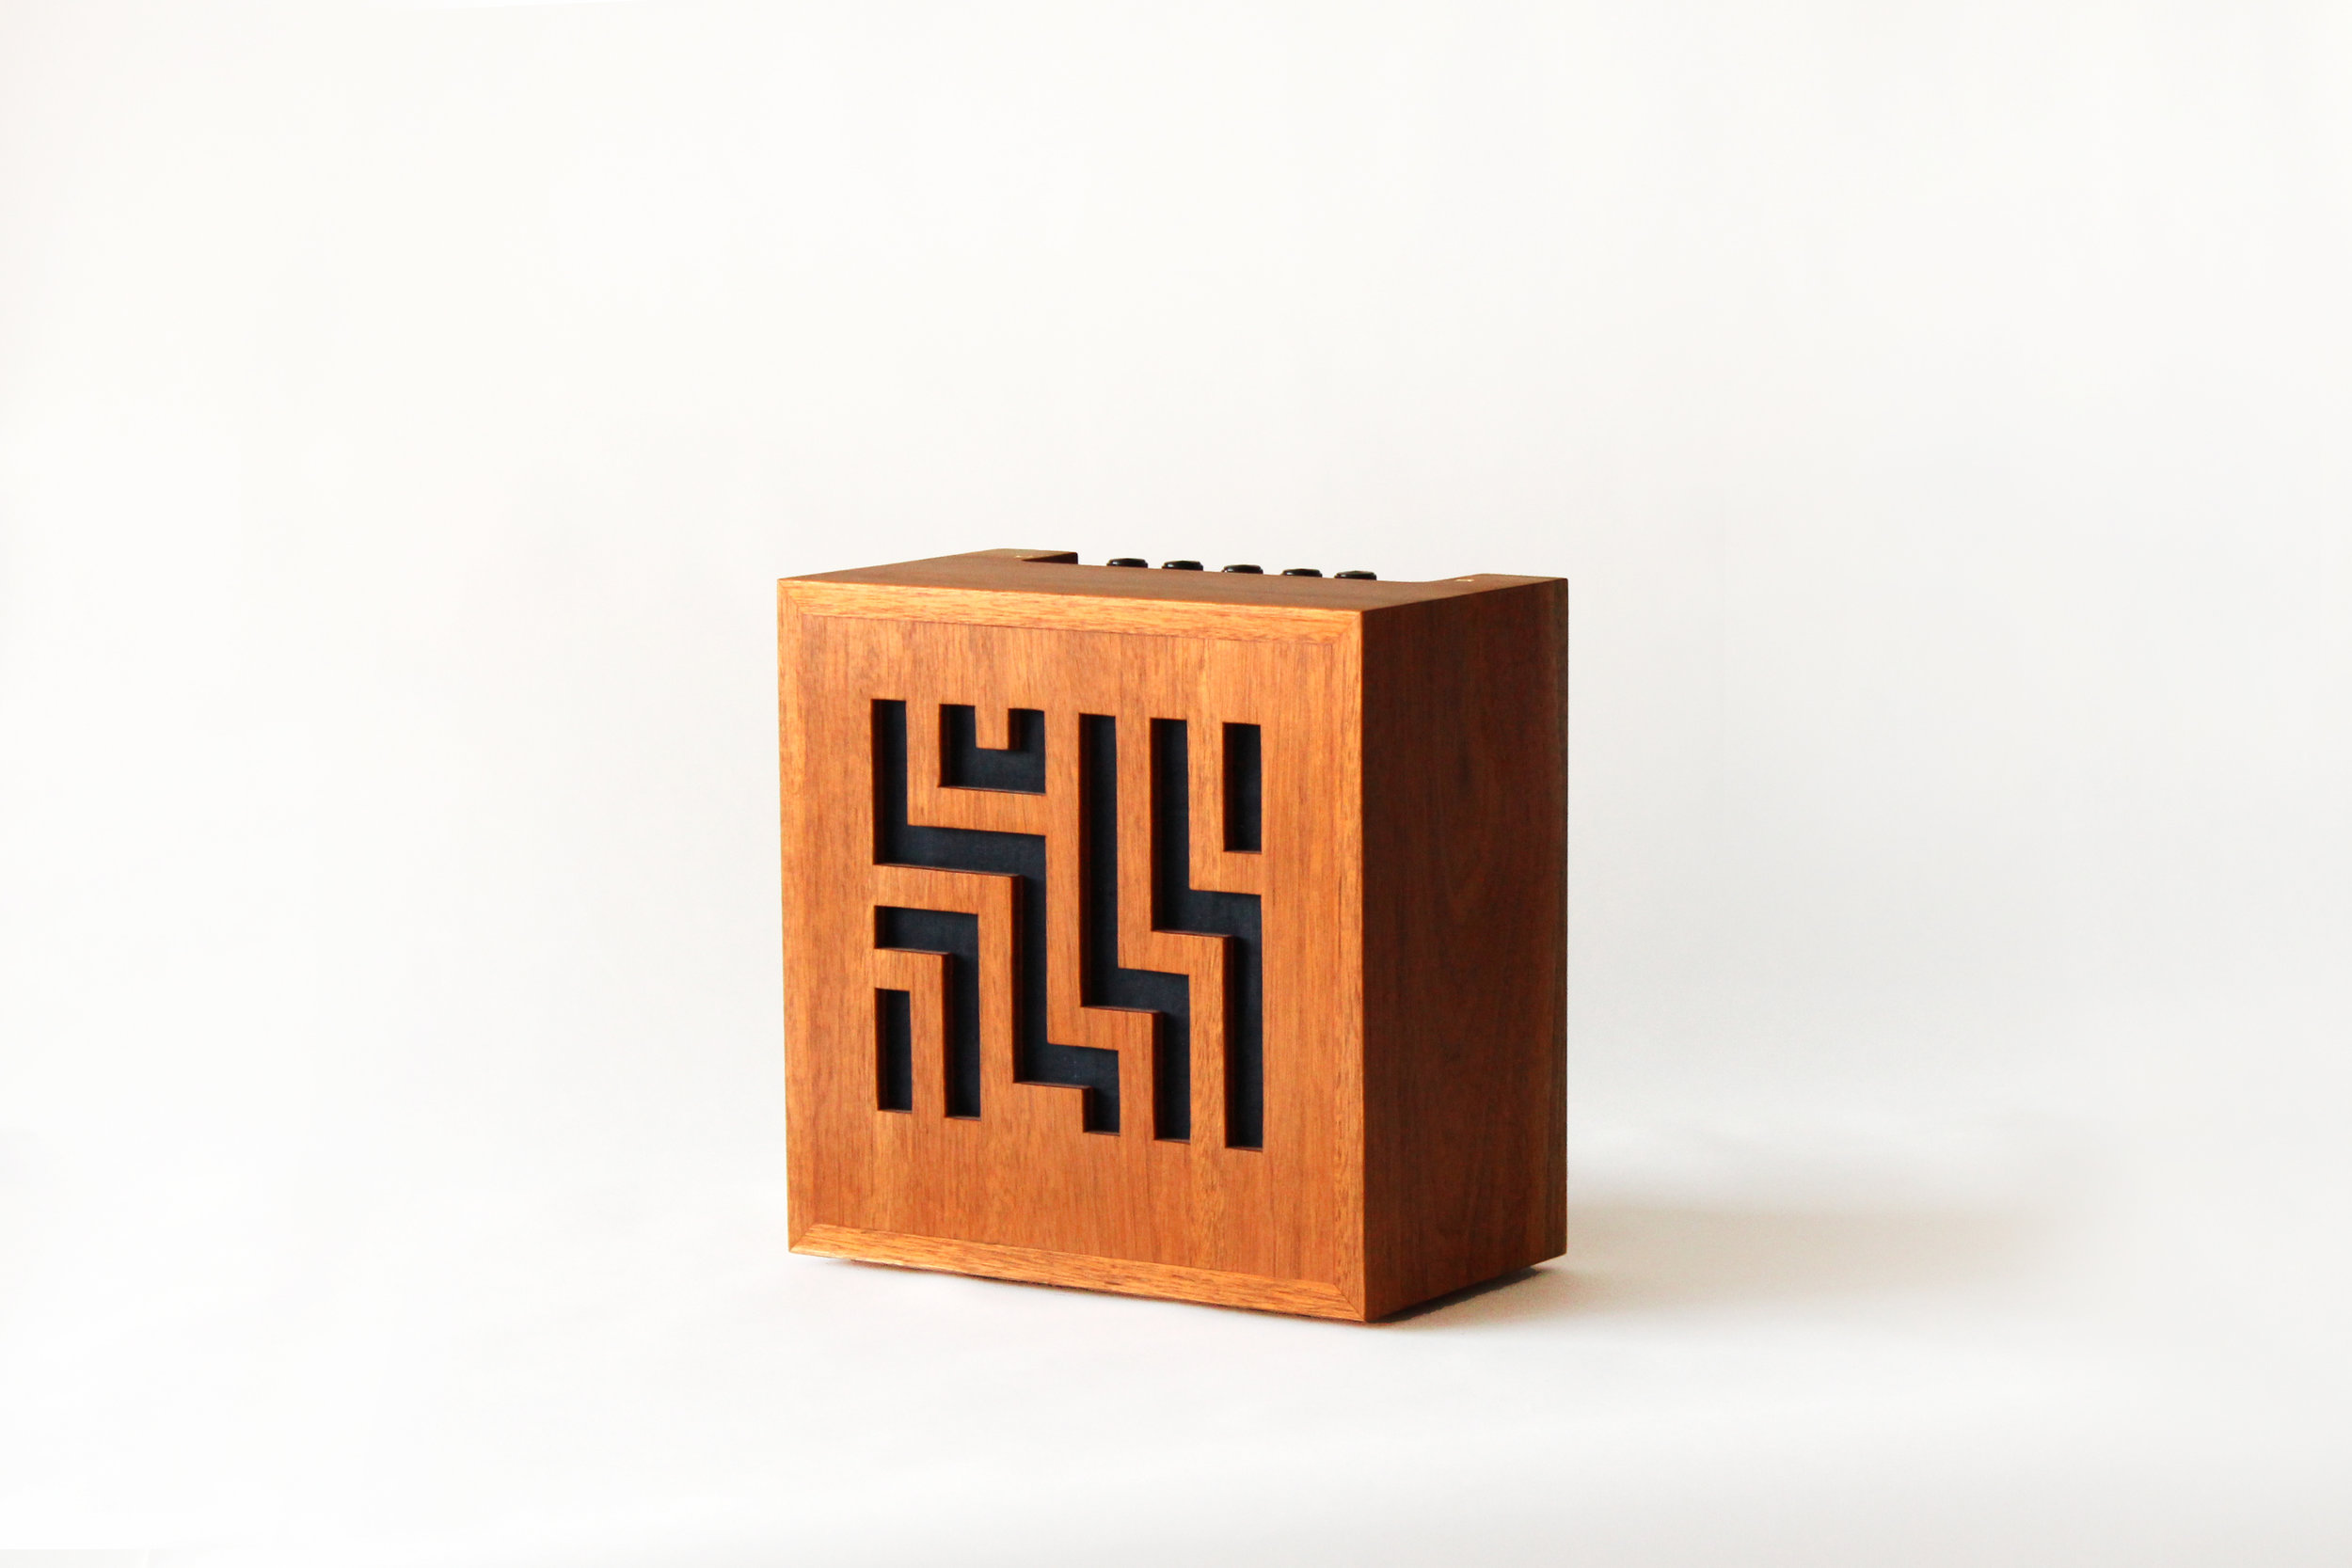 Emma Senft, custom amp, mahogany, solid wood, fine furniture, Montréal, meubles sur mesure, Quebec, custom music gear, mahogany cabinet, vintage radio, art deco,